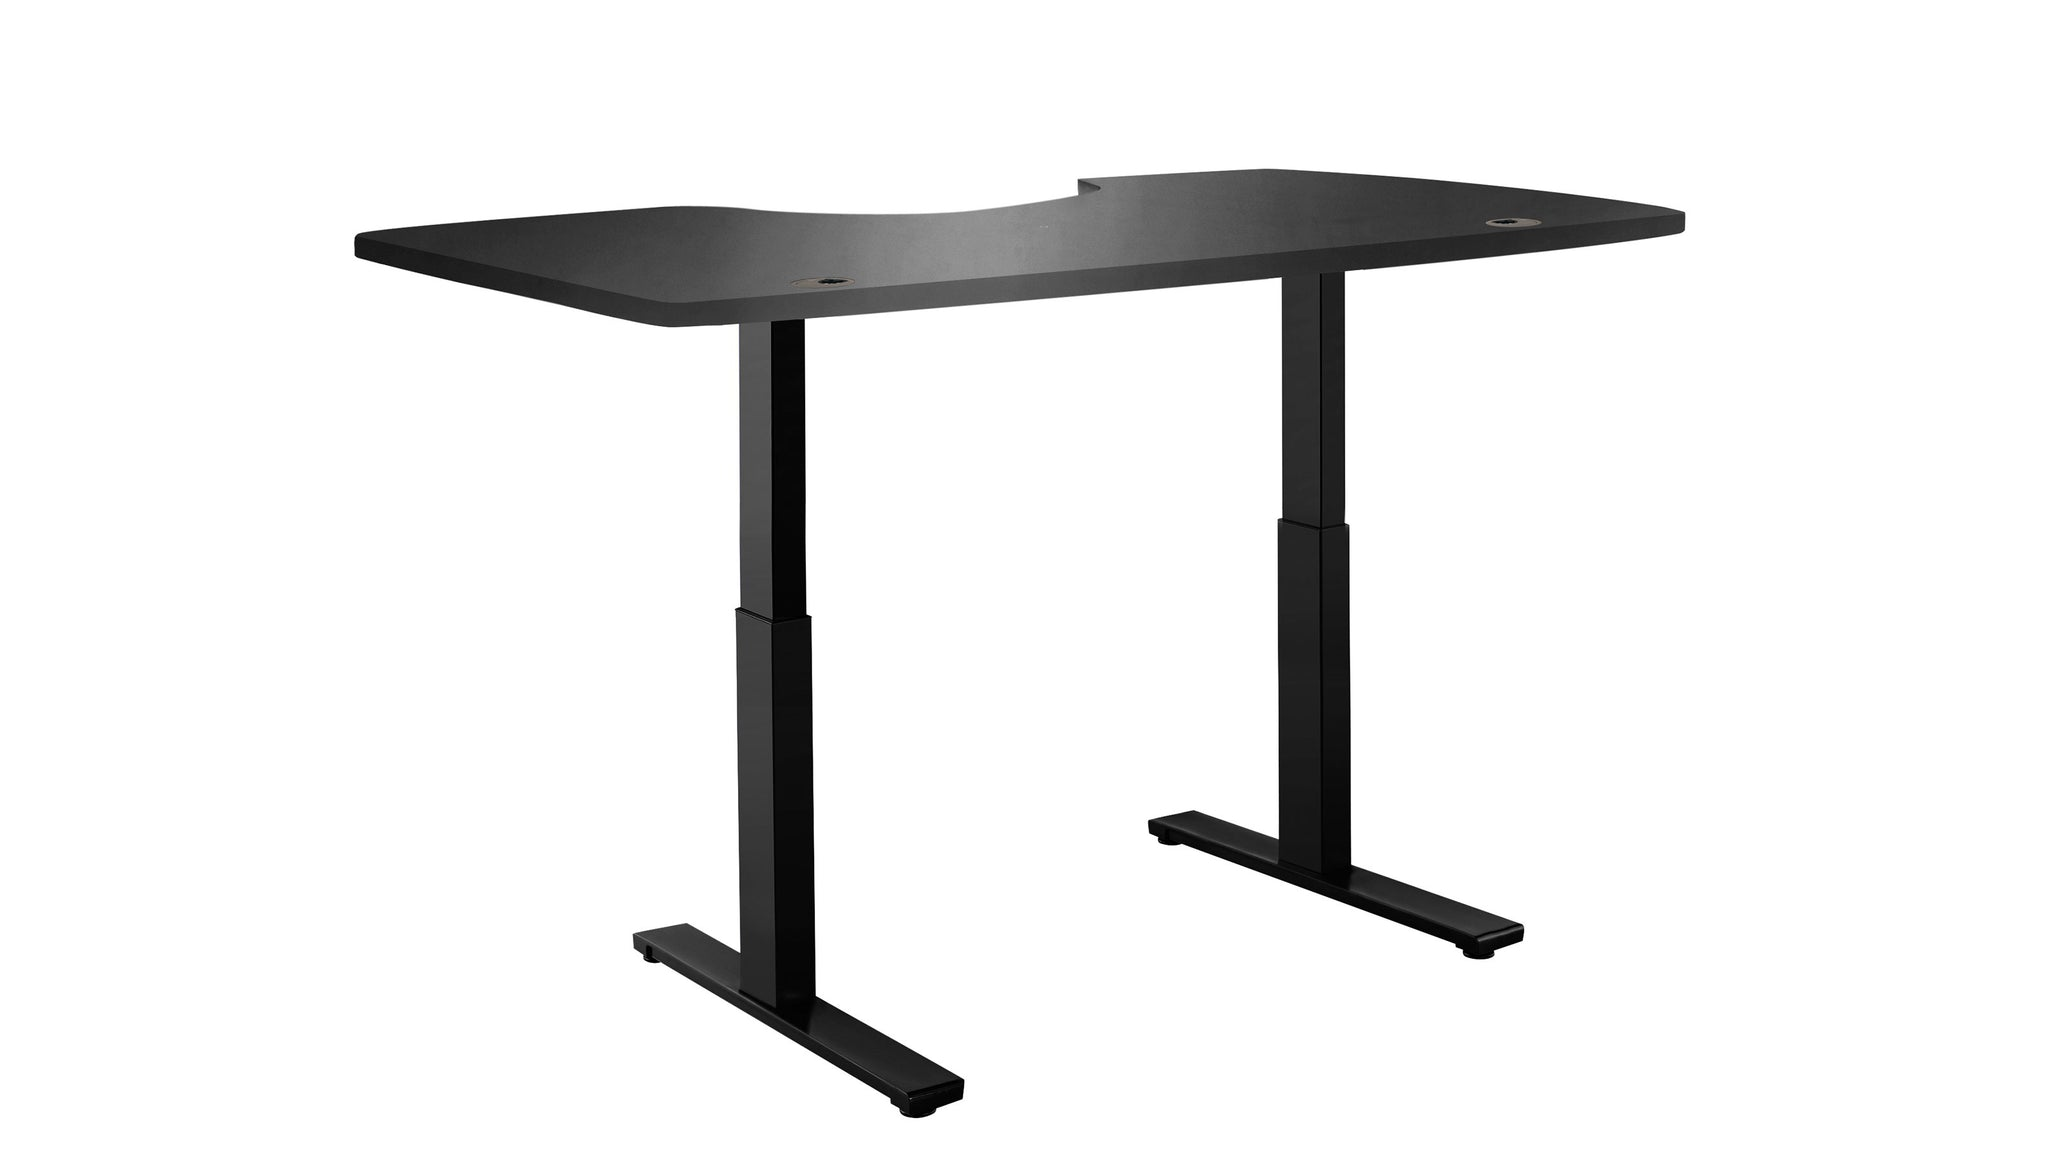 "ActiveDesk Standing Desk with Electric Adjustble Height 28 - 46 inches, Black Frame - Black Ergo Table Top size 53"" x 30"""